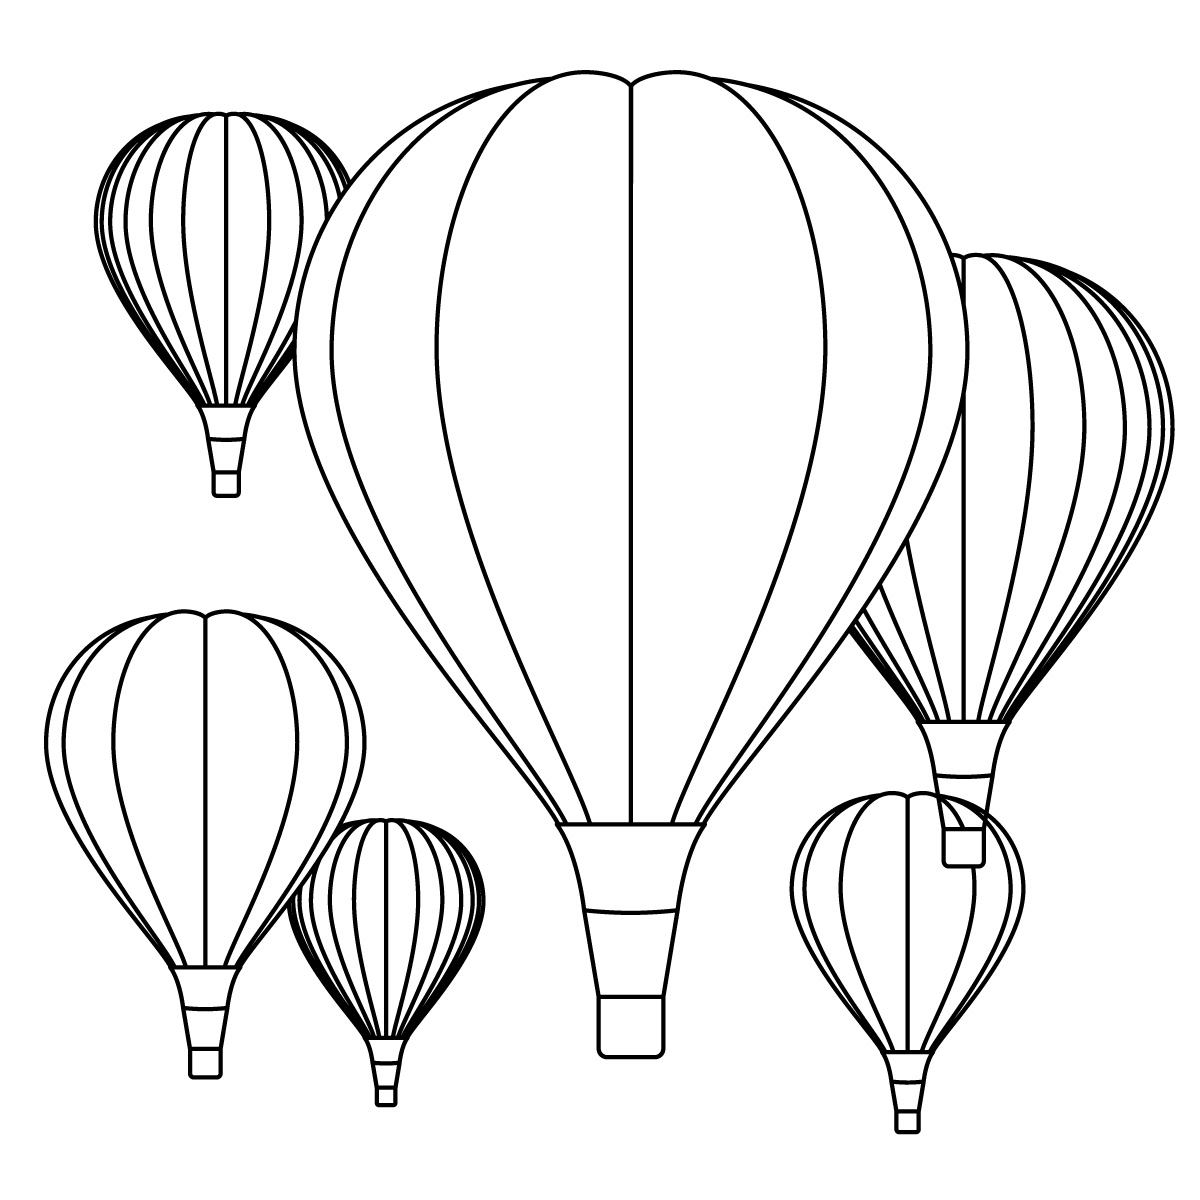 1200x1200 Drawn Balloon Drawing Free Clip Art Stock Illustrations